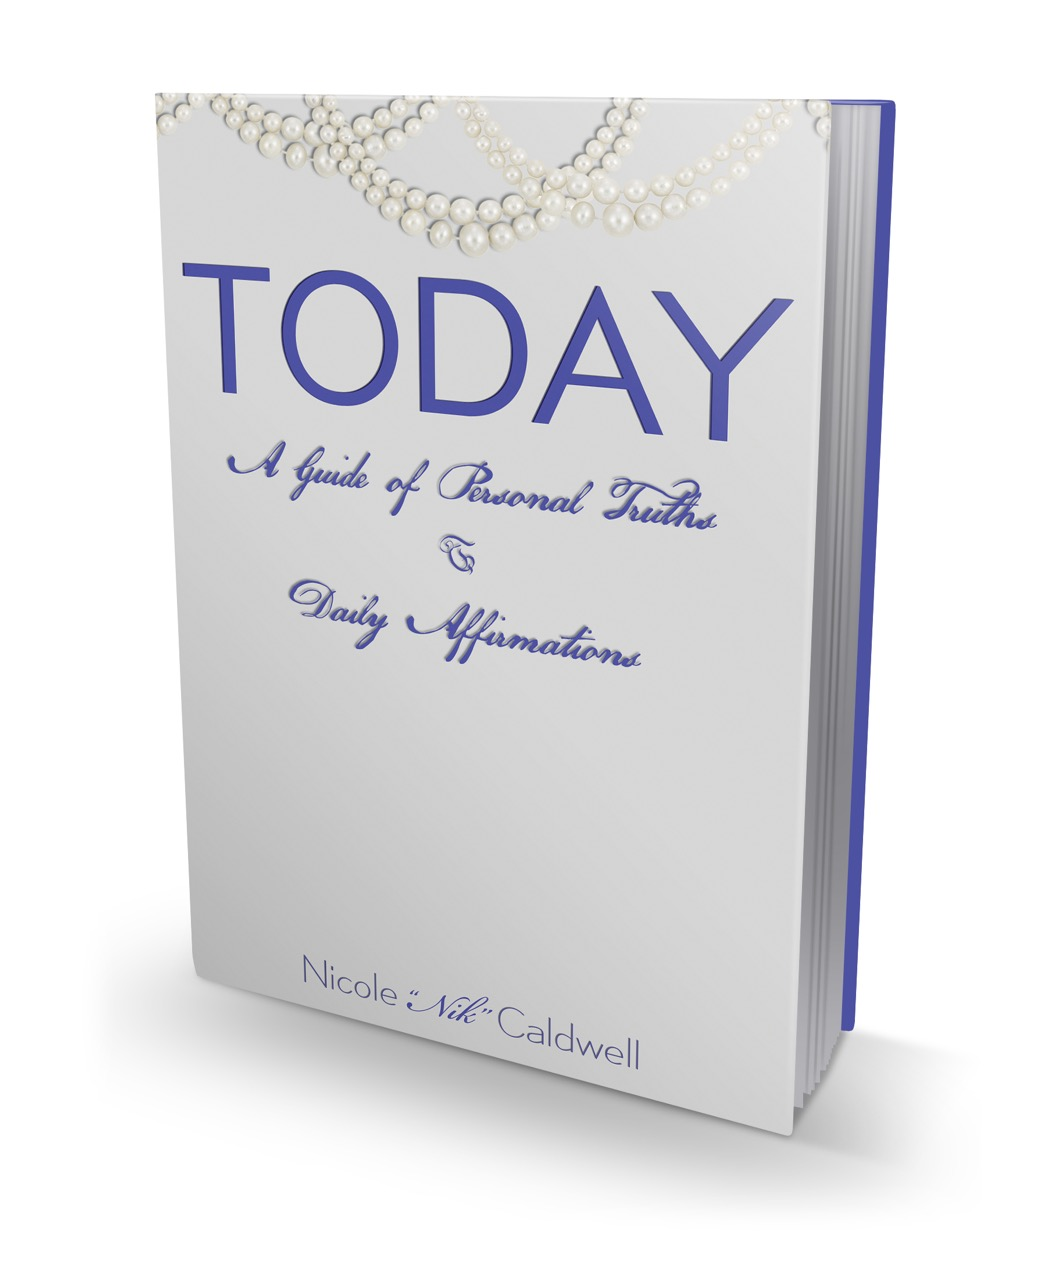 TODAY: A Guide of Personal Truths & Daily Affirmations